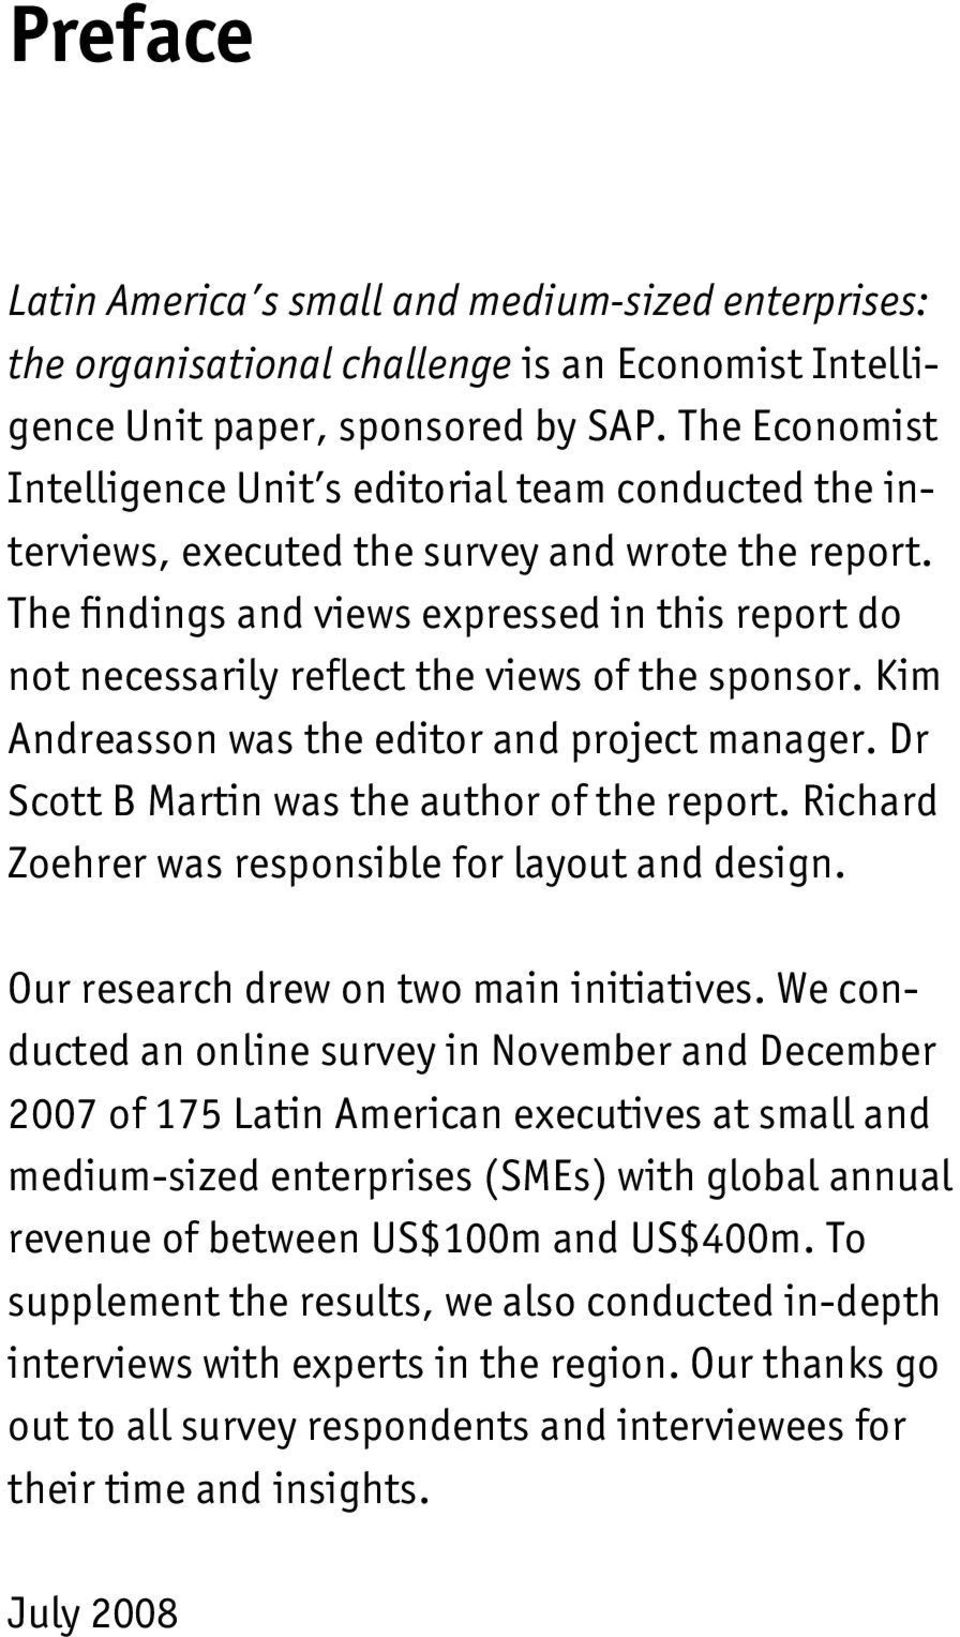 The findings and views expressed in this report do not necessarily reflect the views of the sponsor. Kim Andreasson was the editor and project manager. Dr Scott B Martin was the author of the report.